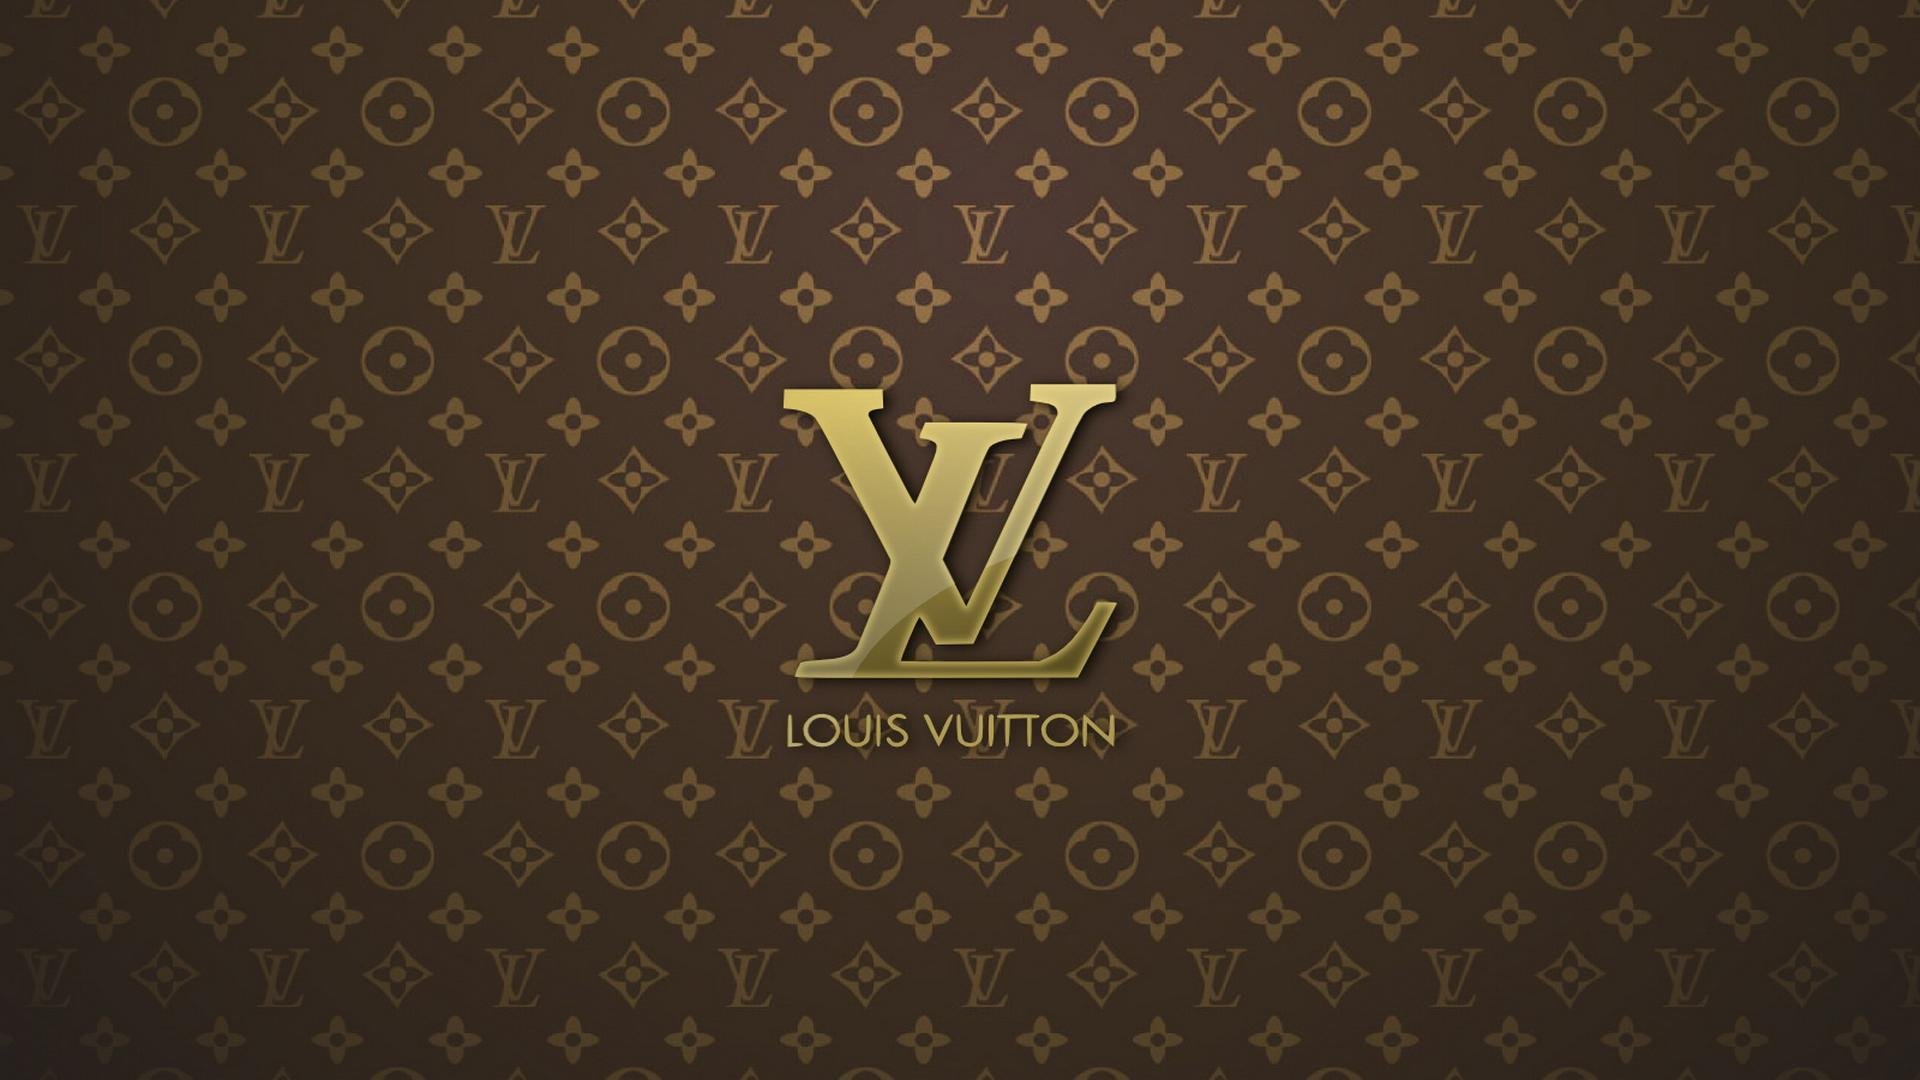 Inspirations from Louis Vuitton spring fashion trends Spring Fashion Trends to Religiously Follow This Year Inspirations from Louis Vuitton cover spring fashion trends Spring Fashion Trends to Religiously Follow This Year Inspirations from Louis Vuitton cover